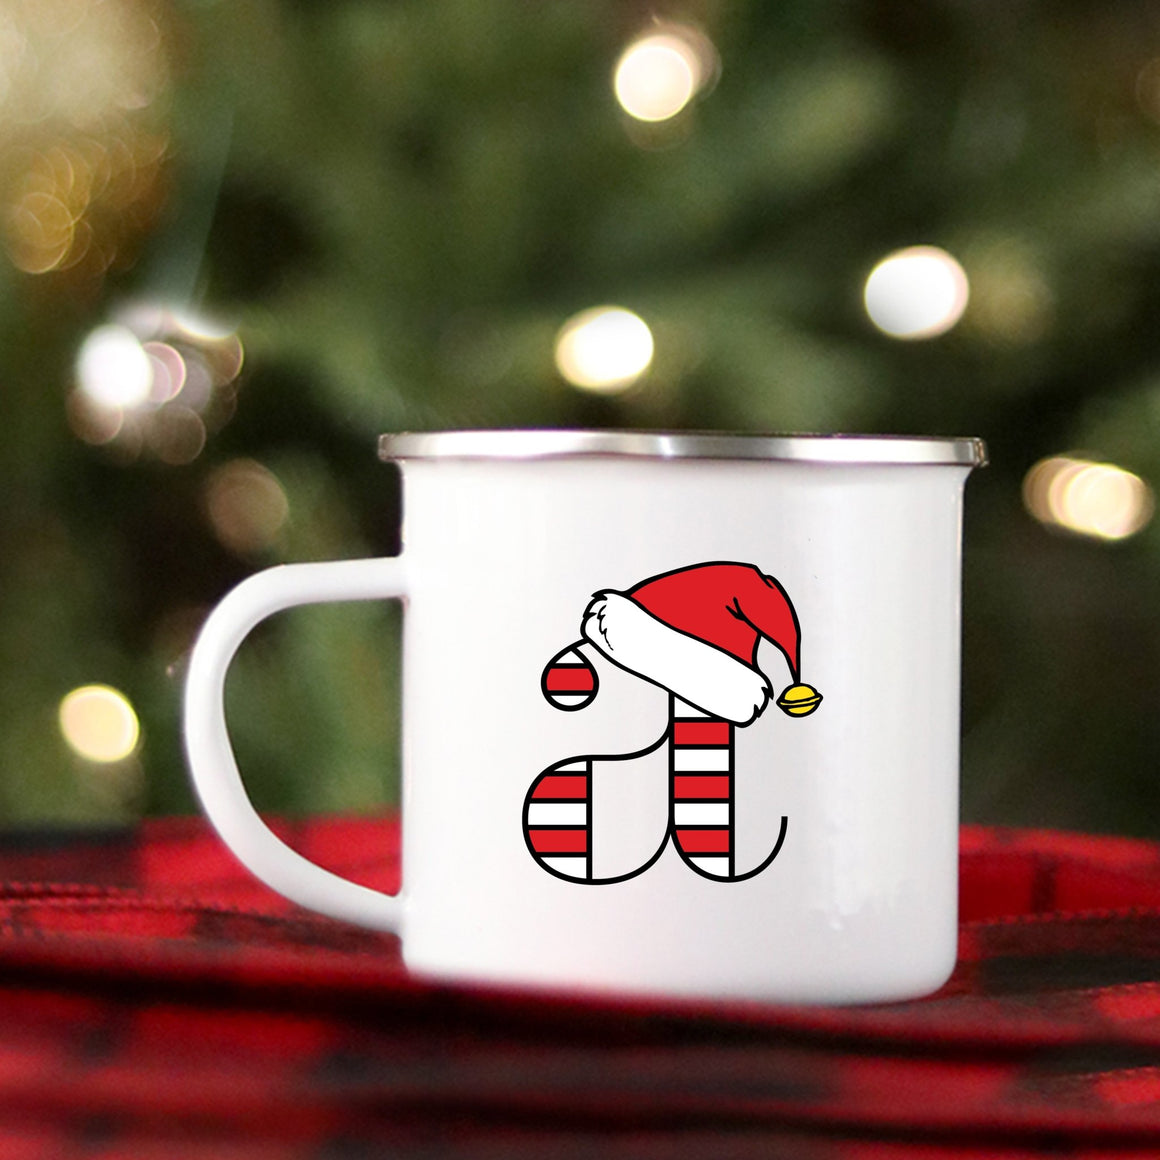 Candy Cane Monogram Campfire Mug - Pretty Collected